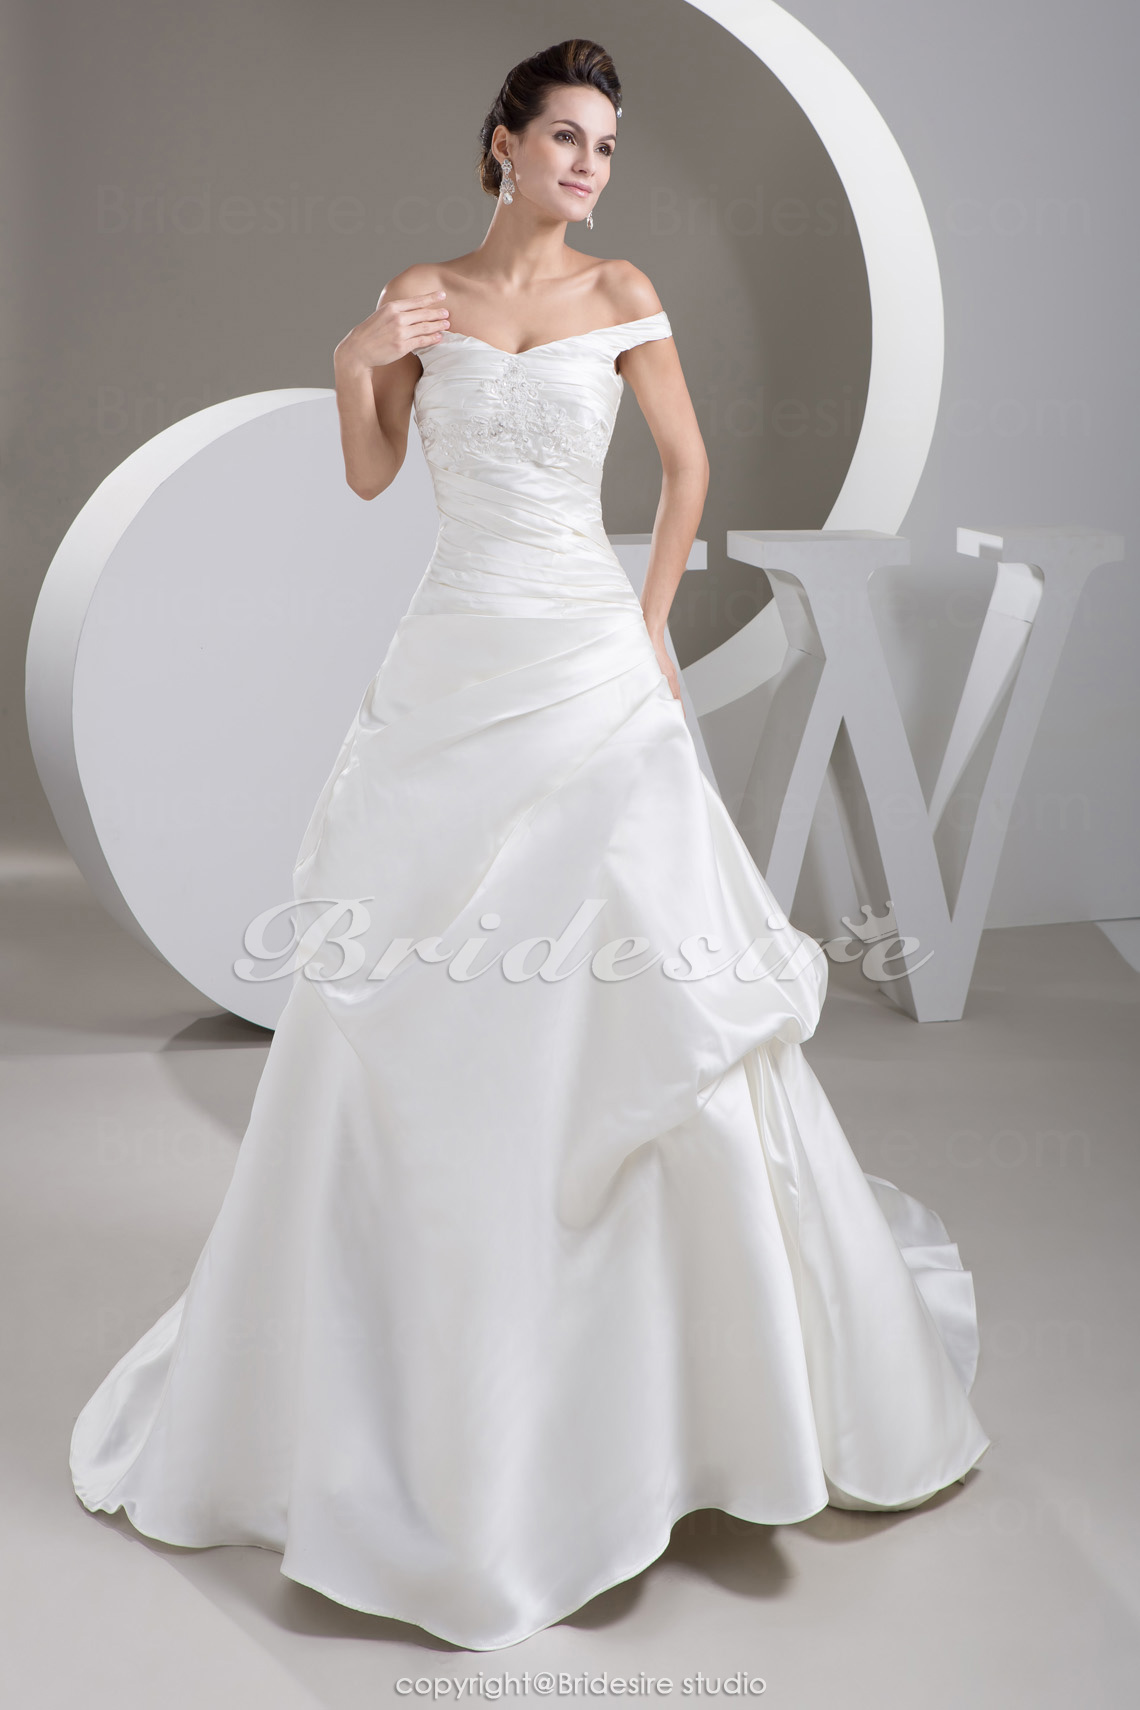 A-line Off-the-shoulder Court Train Sleeveless Satin Organza Wedding Dress